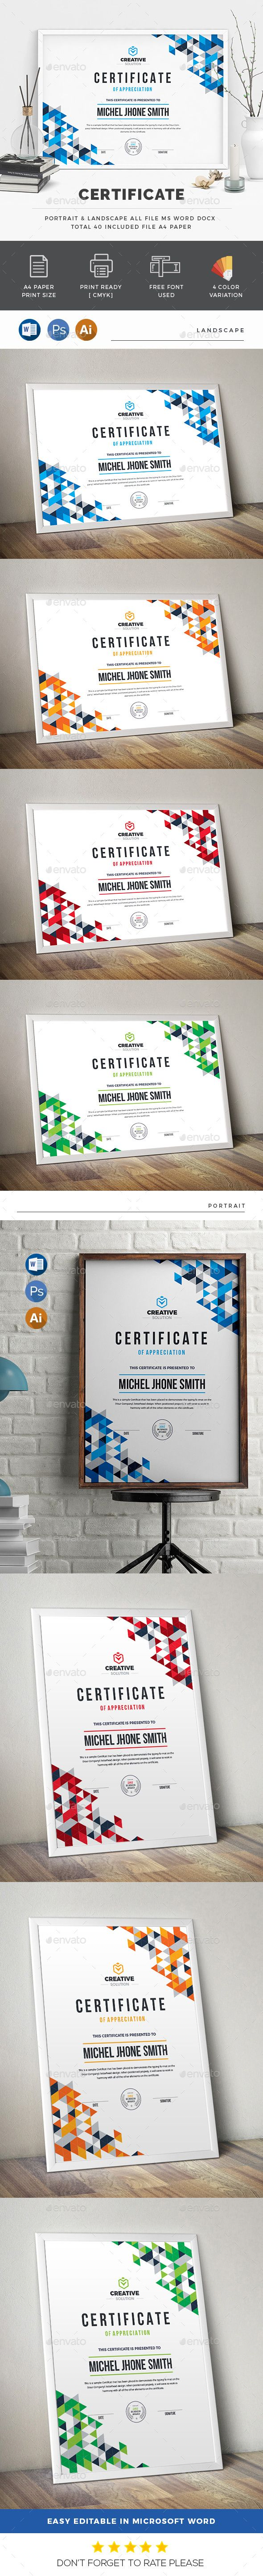 #Certificate - Certificates #Stationery Download here: https://graphicriver.net/item/certificate/20181854?ref=alena994